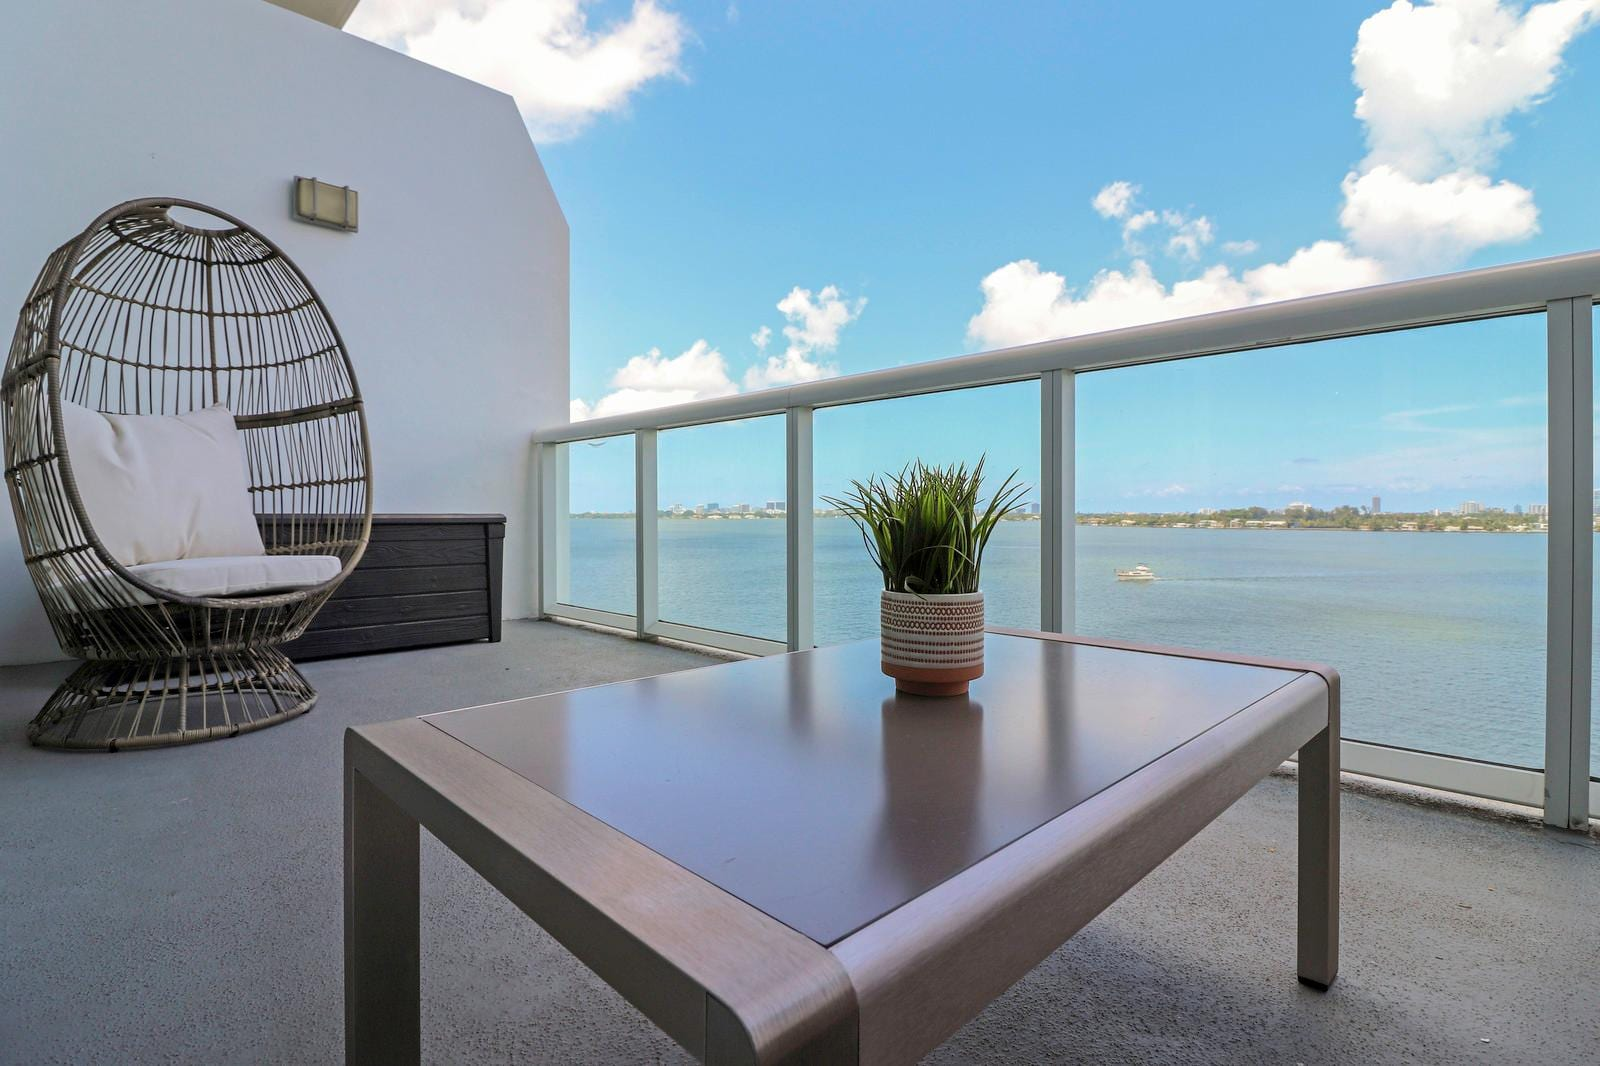 Watch the sunrise from unobstructed, waterfront views